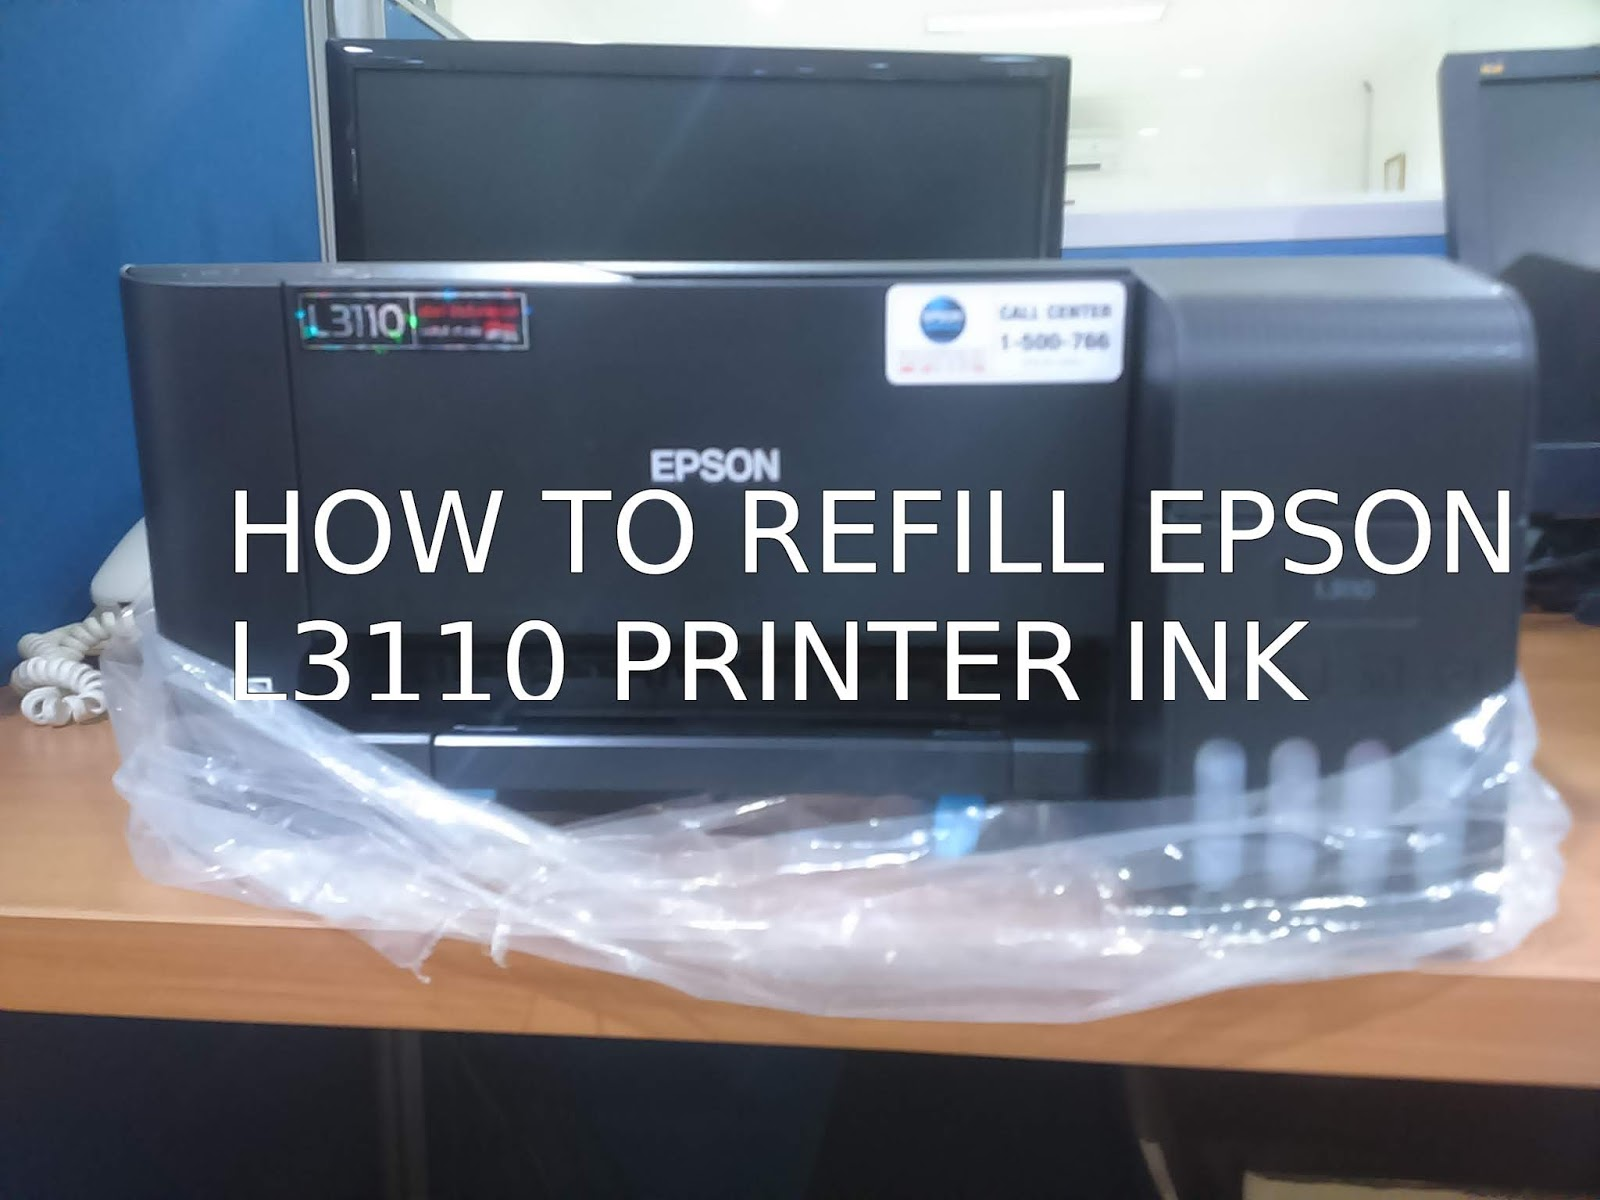 How to Fill the Epson L3110 Printer Ink - NEWBIE ADSVISOR